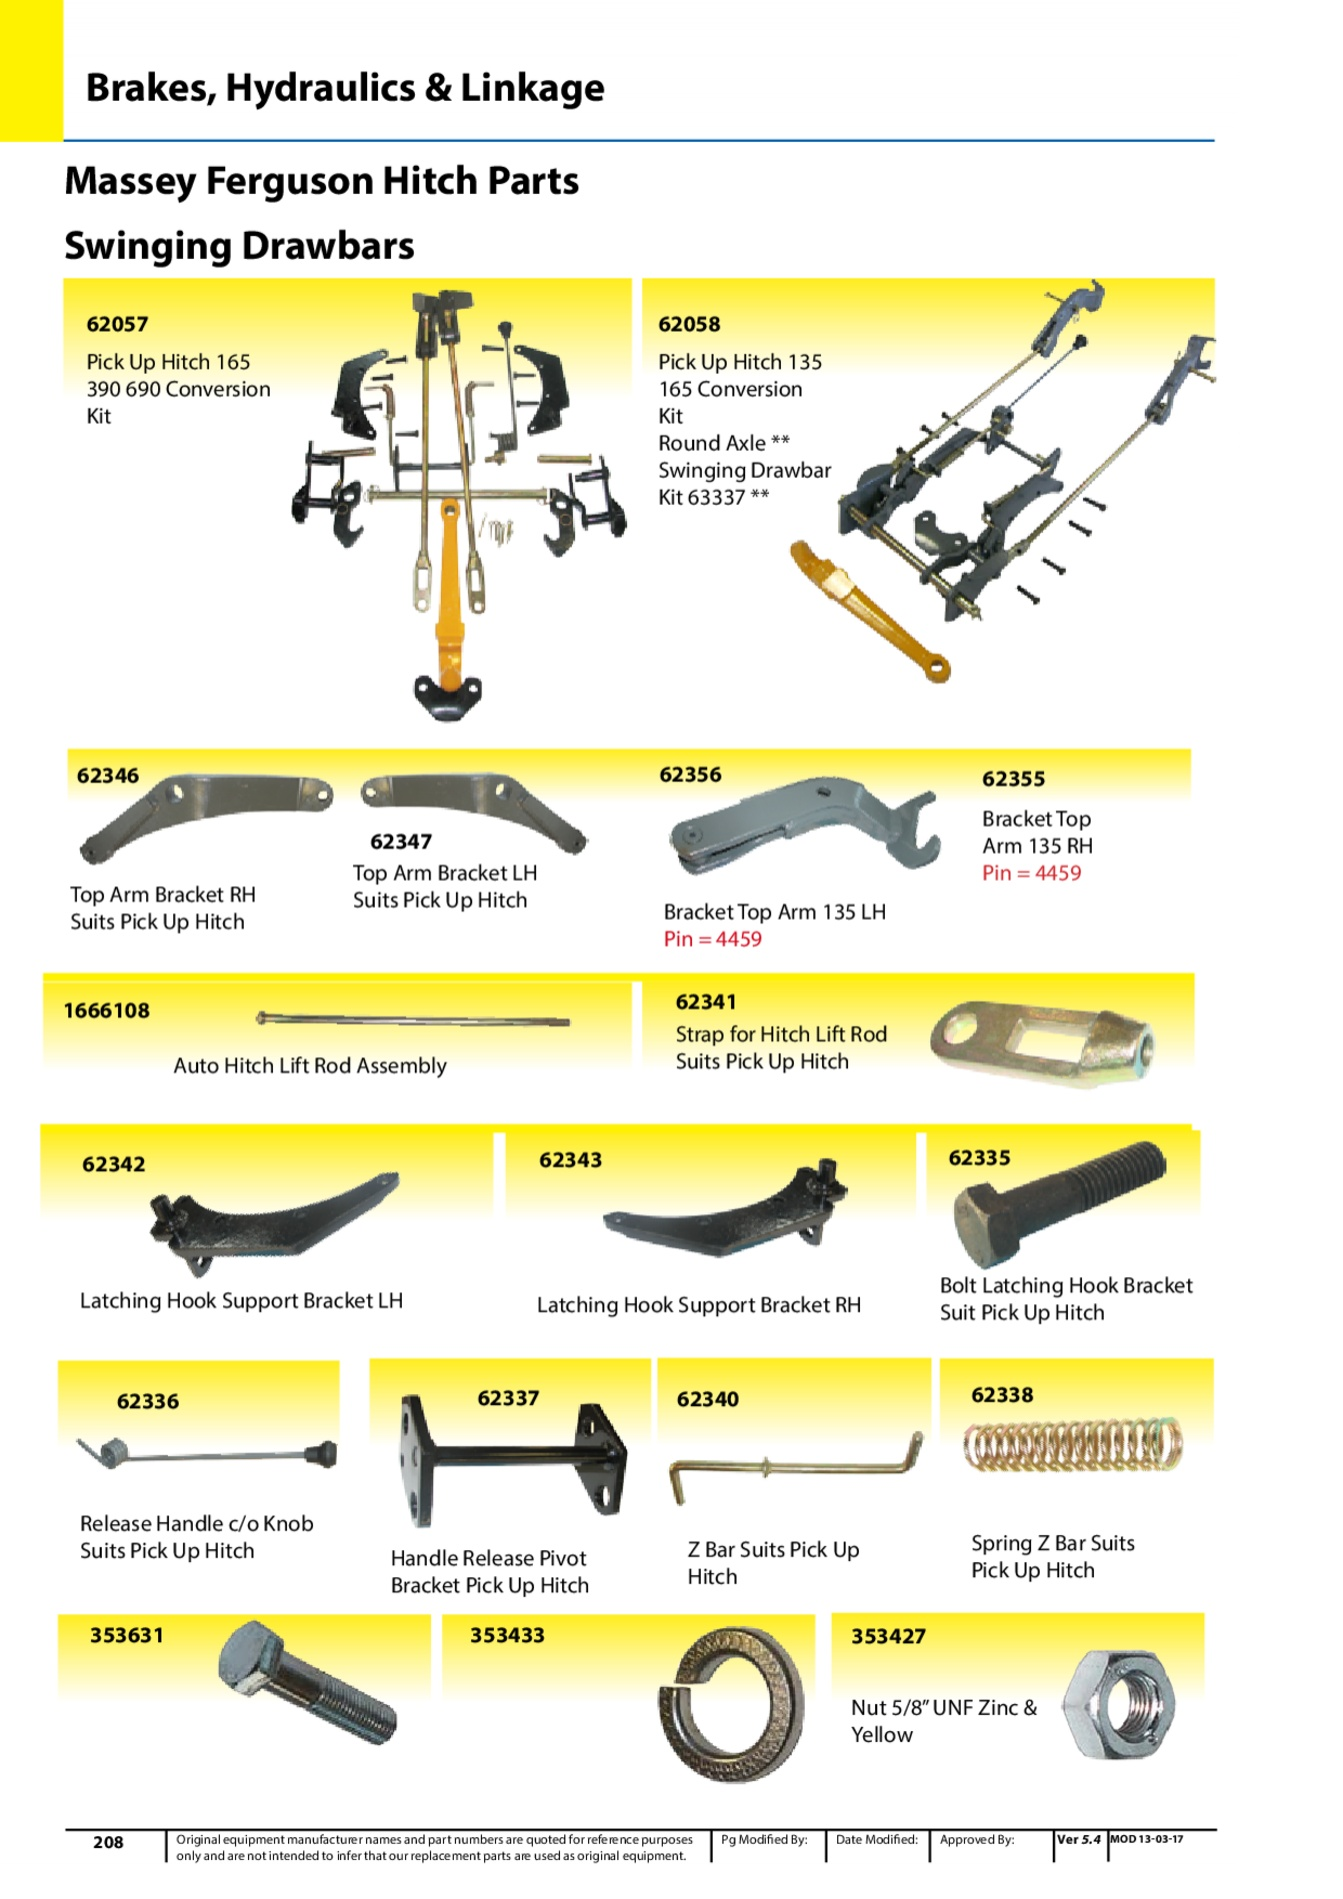 Massey Ferguson Lift Arm Leveling Assembly For : Top arm bracket rh suits pick up hitch quality tractor parts